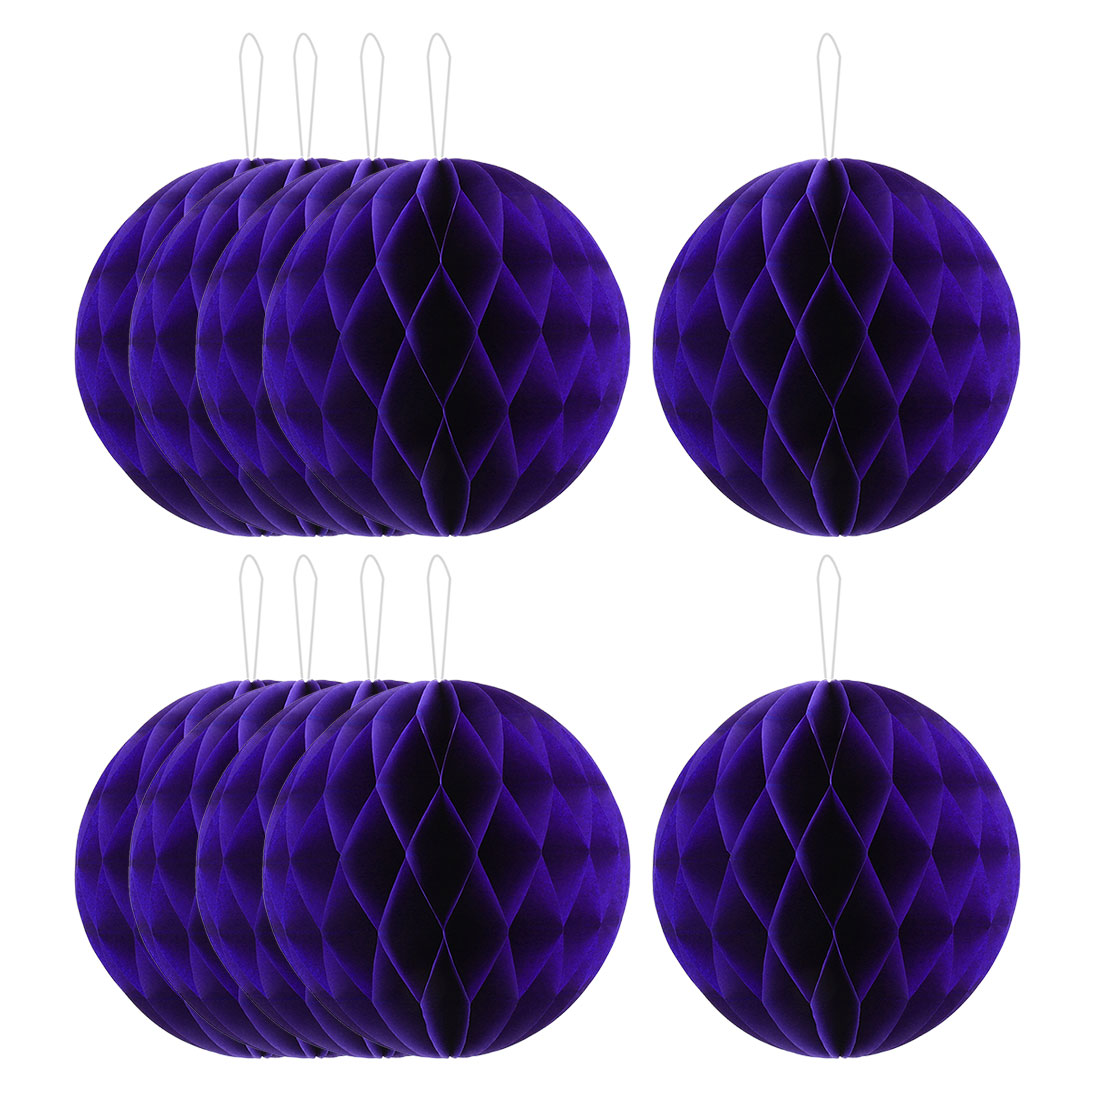 Family Paper Wall Door Hanging Decor Lantern Honeycomb Ball Dark Purple 10 Inch Dia 10 Pcs